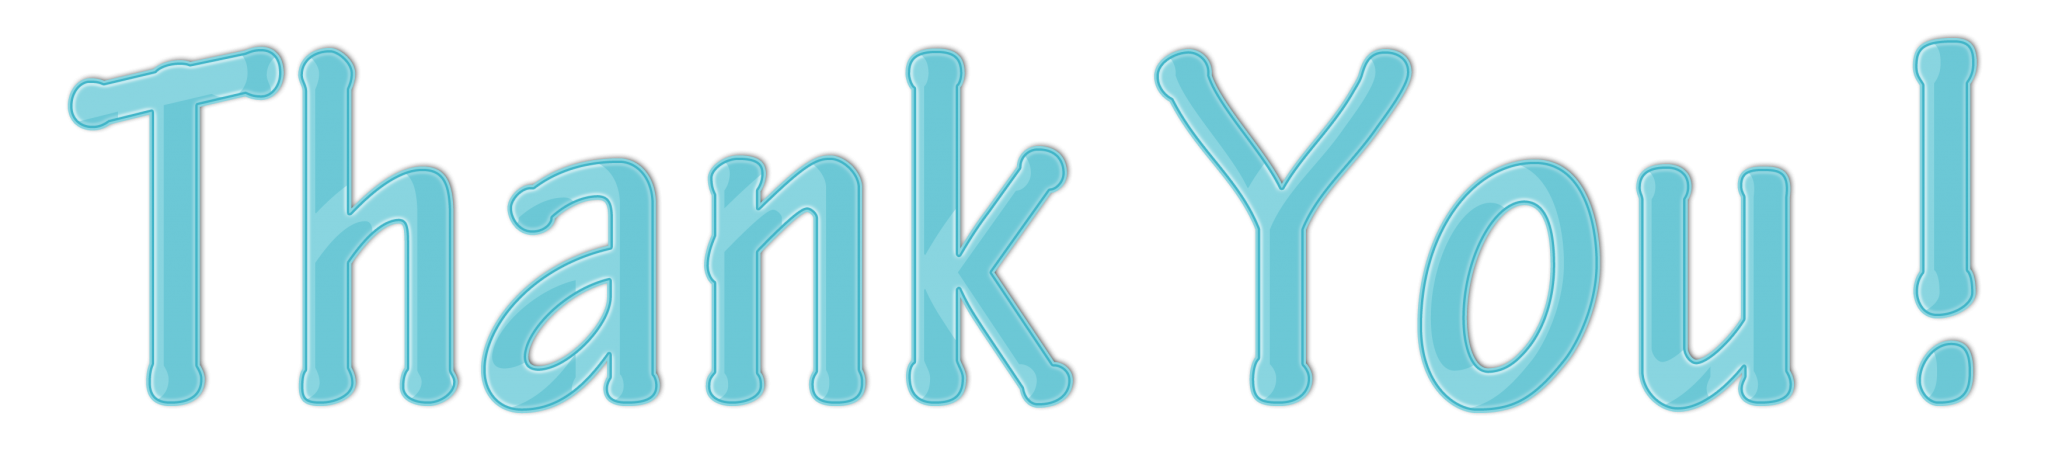 clip free download Color clipart turquoise. Thank you cyan blue